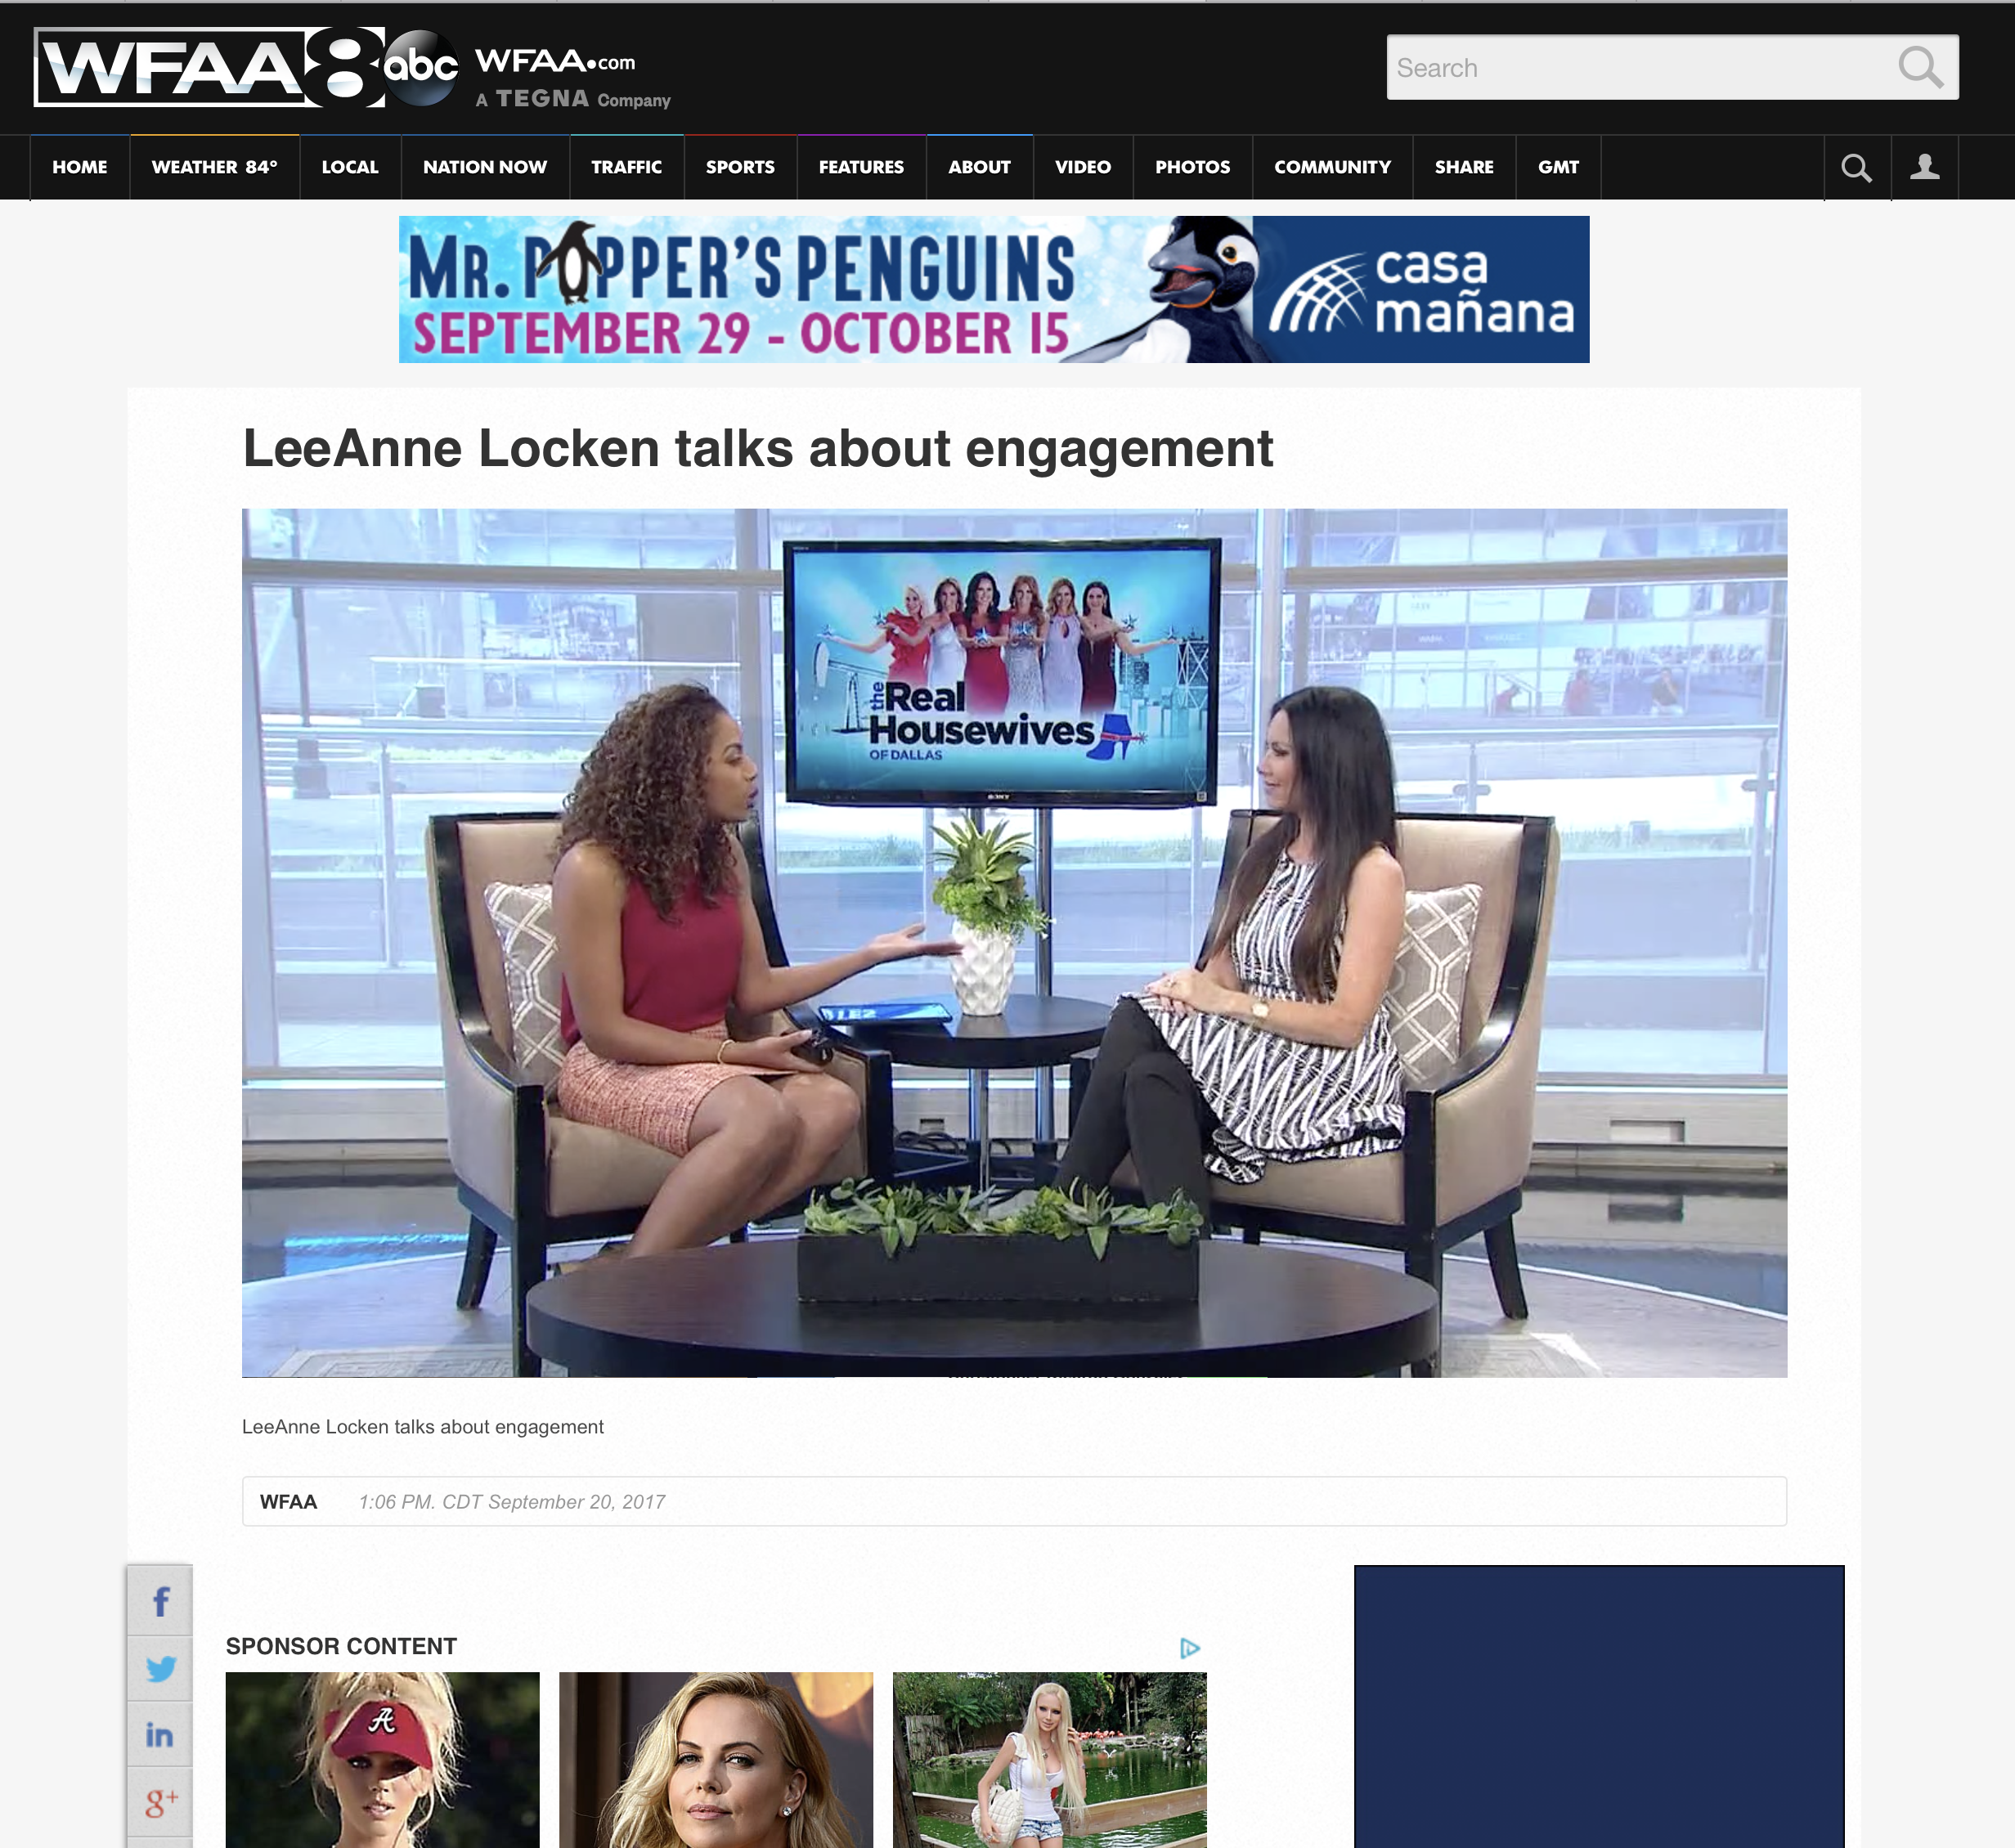 WFAA discusses my Engagement